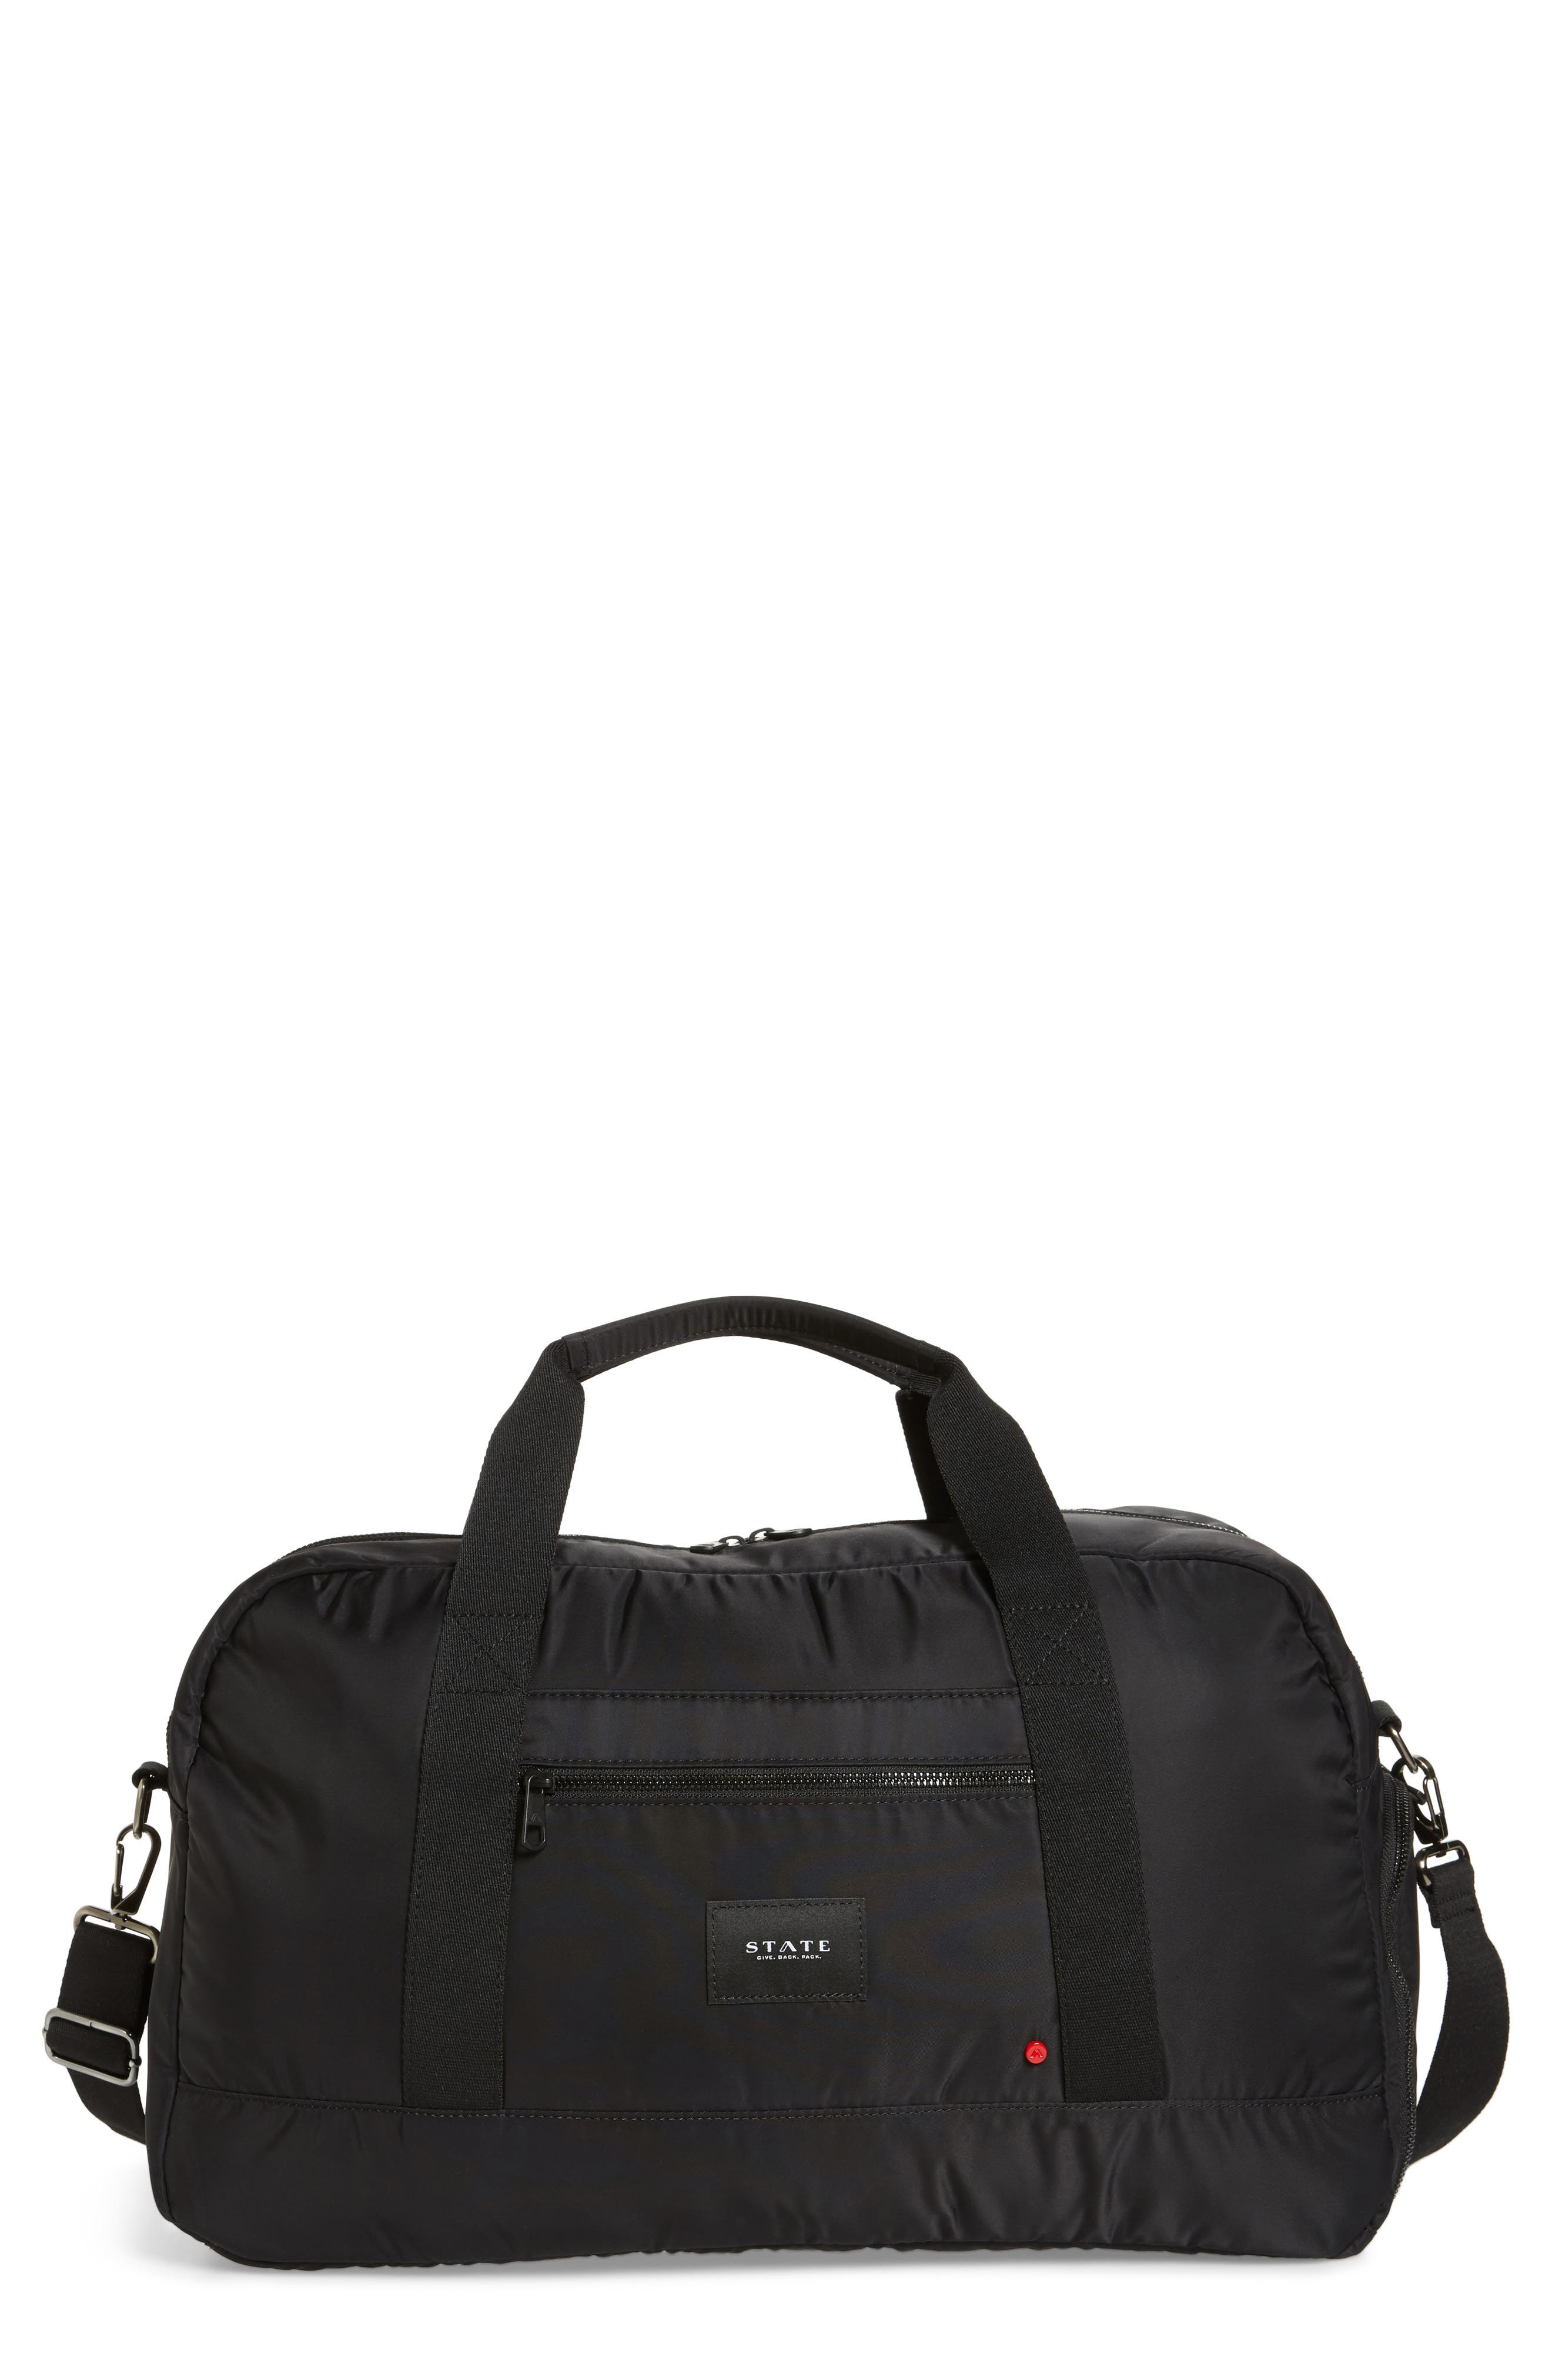 STATE Bags The Heights - Franklin Nylon Duffel Bag